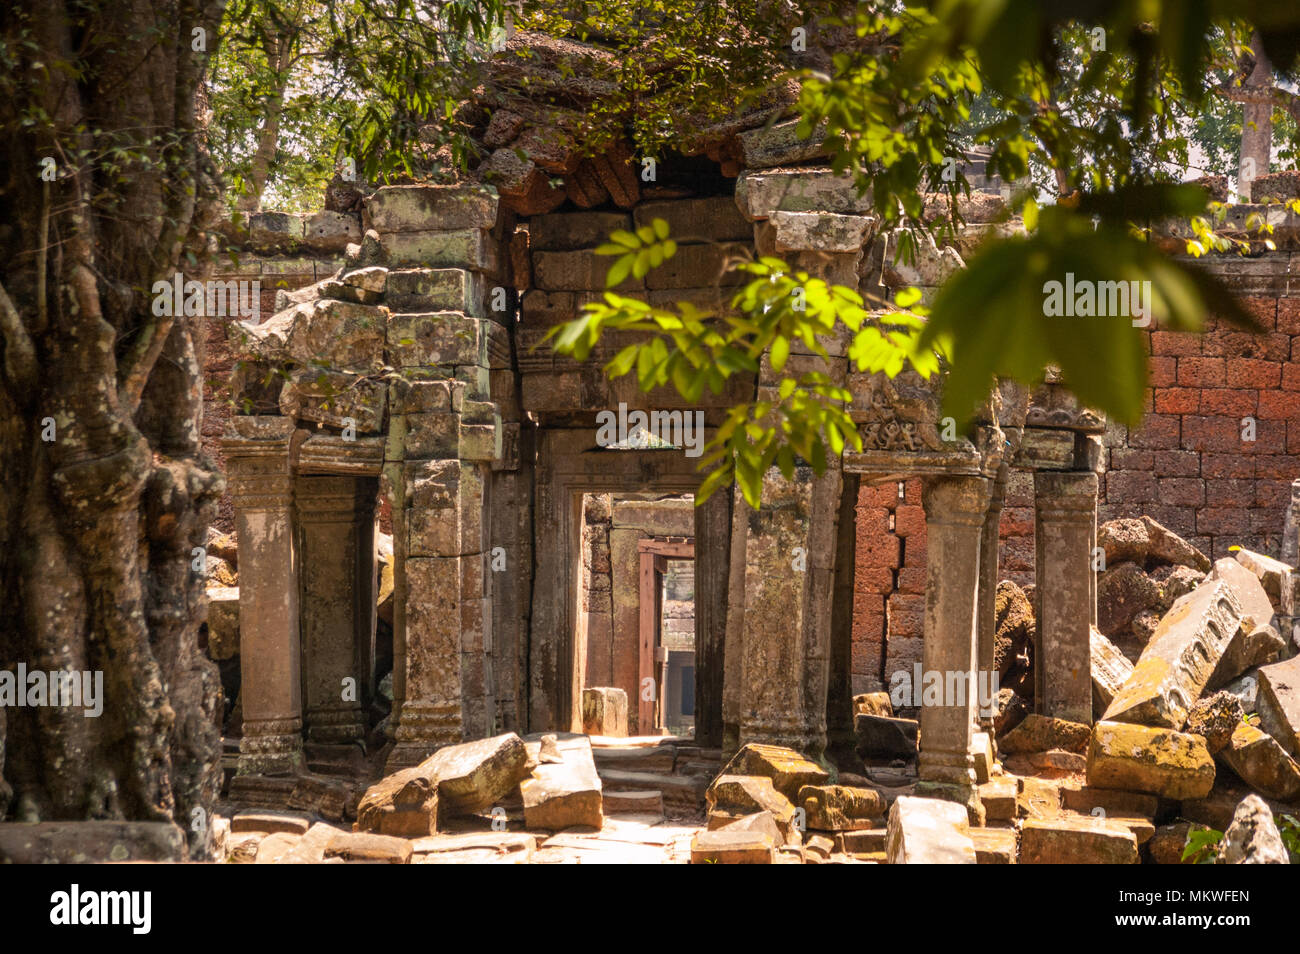 While walls of ancient temples crumble around them, doorways into different areas remain intact, inviting visitors inside. Ta Prohm, Cambodia - Stock Image